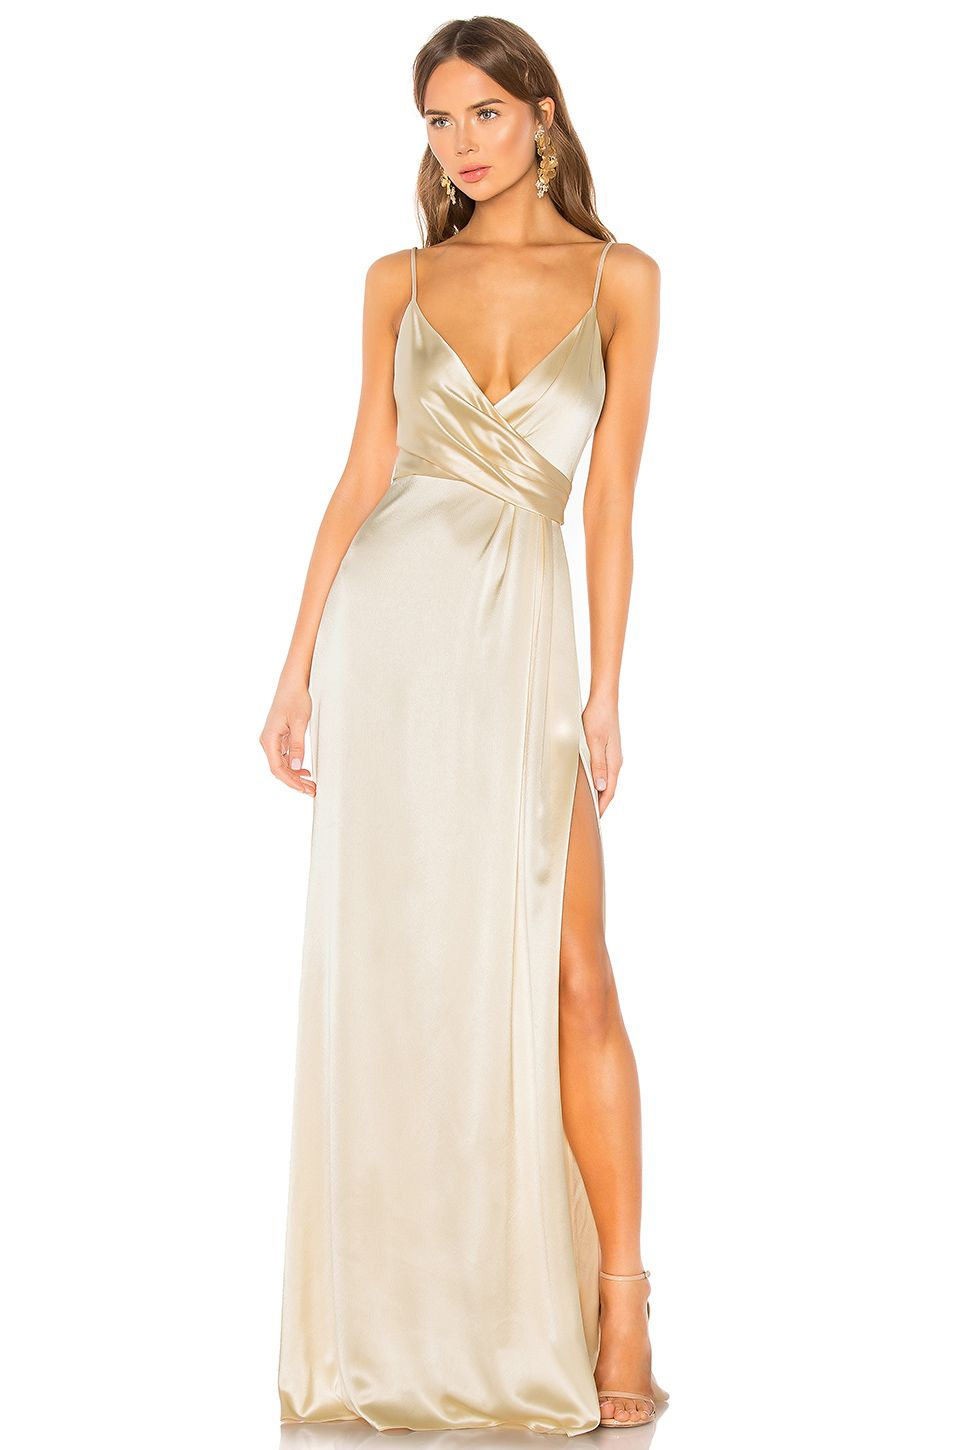 e98e11356d374 JILL JILL STUART Side Draped Slip Gown | All dressed up in 2019 ...